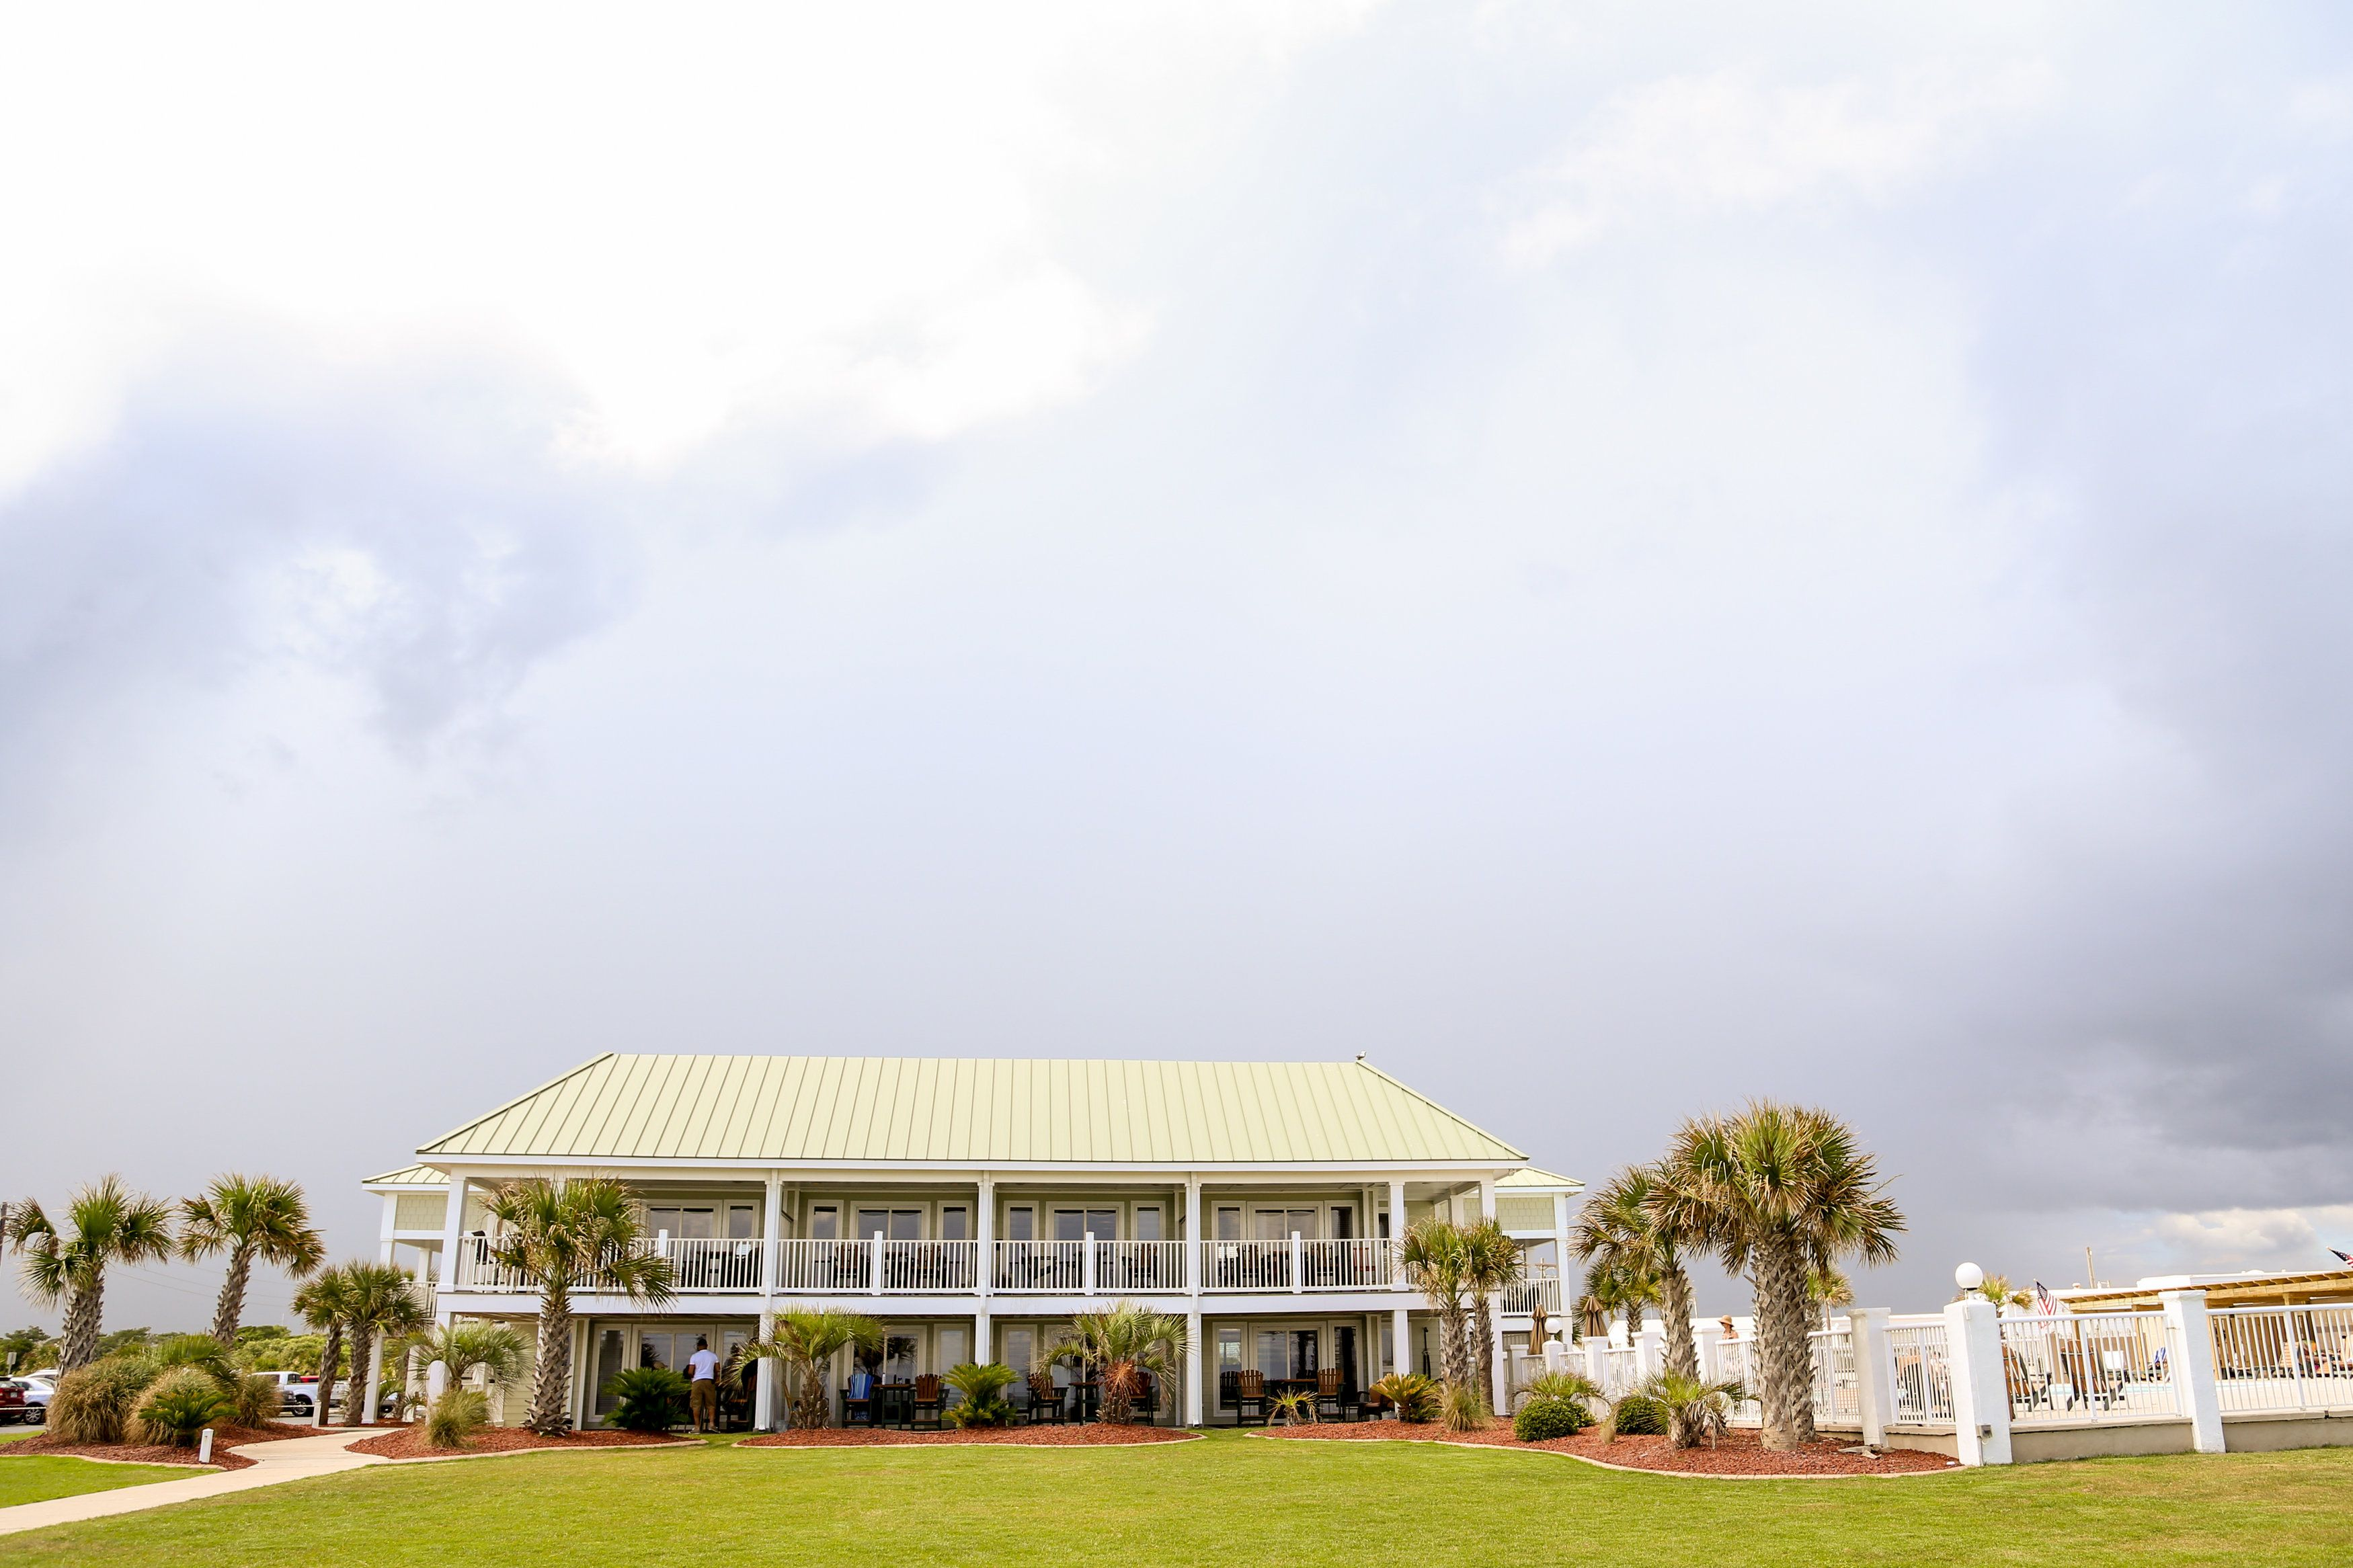 Islander Hotel Emerald Isle Nc Oceanfront Weddings Venue Bluewaterweddingsandevents Wedding